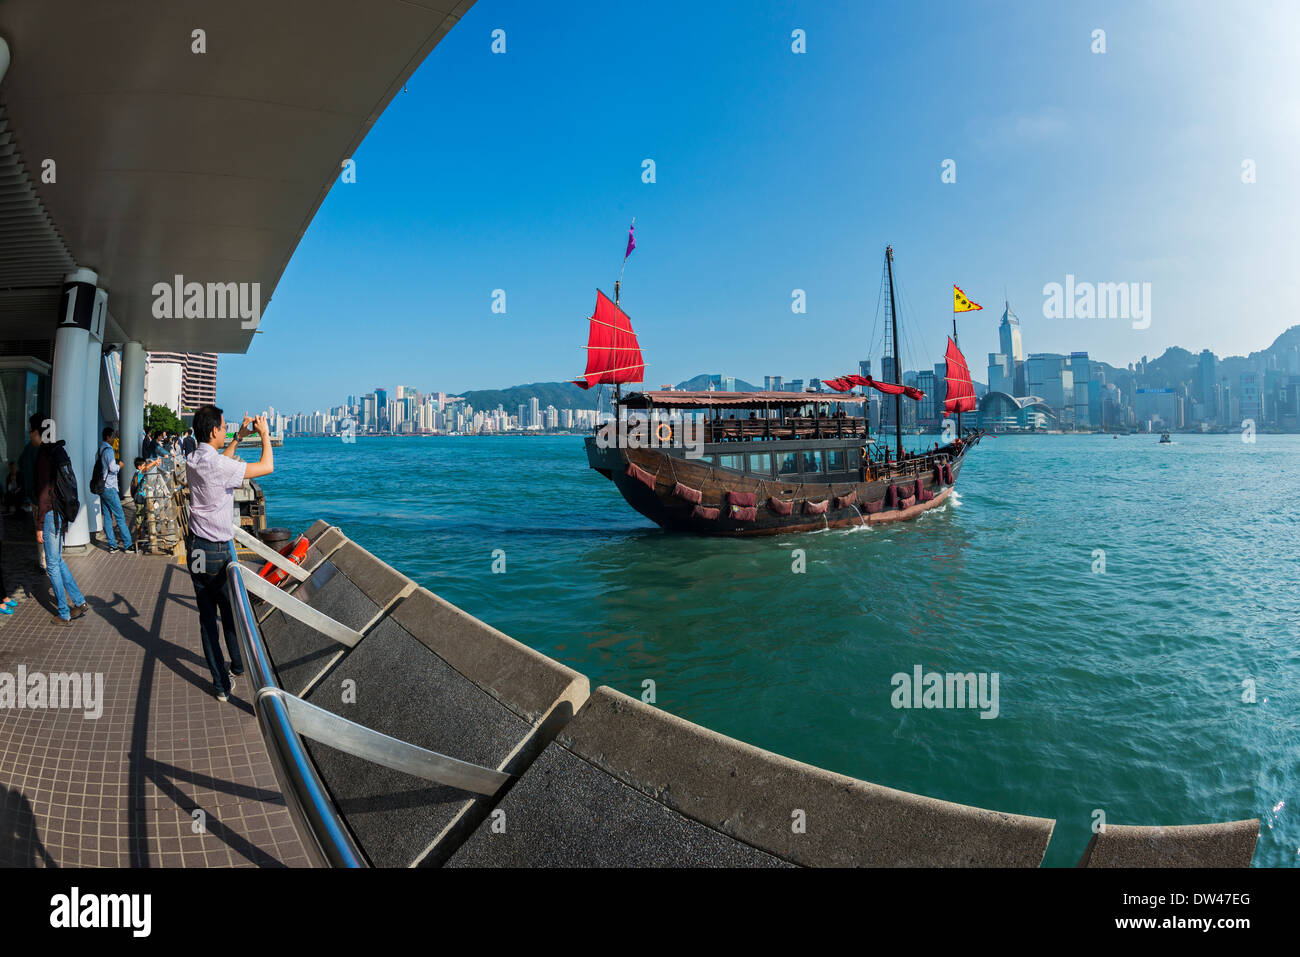 Chinese Junk Tour Boat, Victoria Harbour, Hong Kong - Stock Image